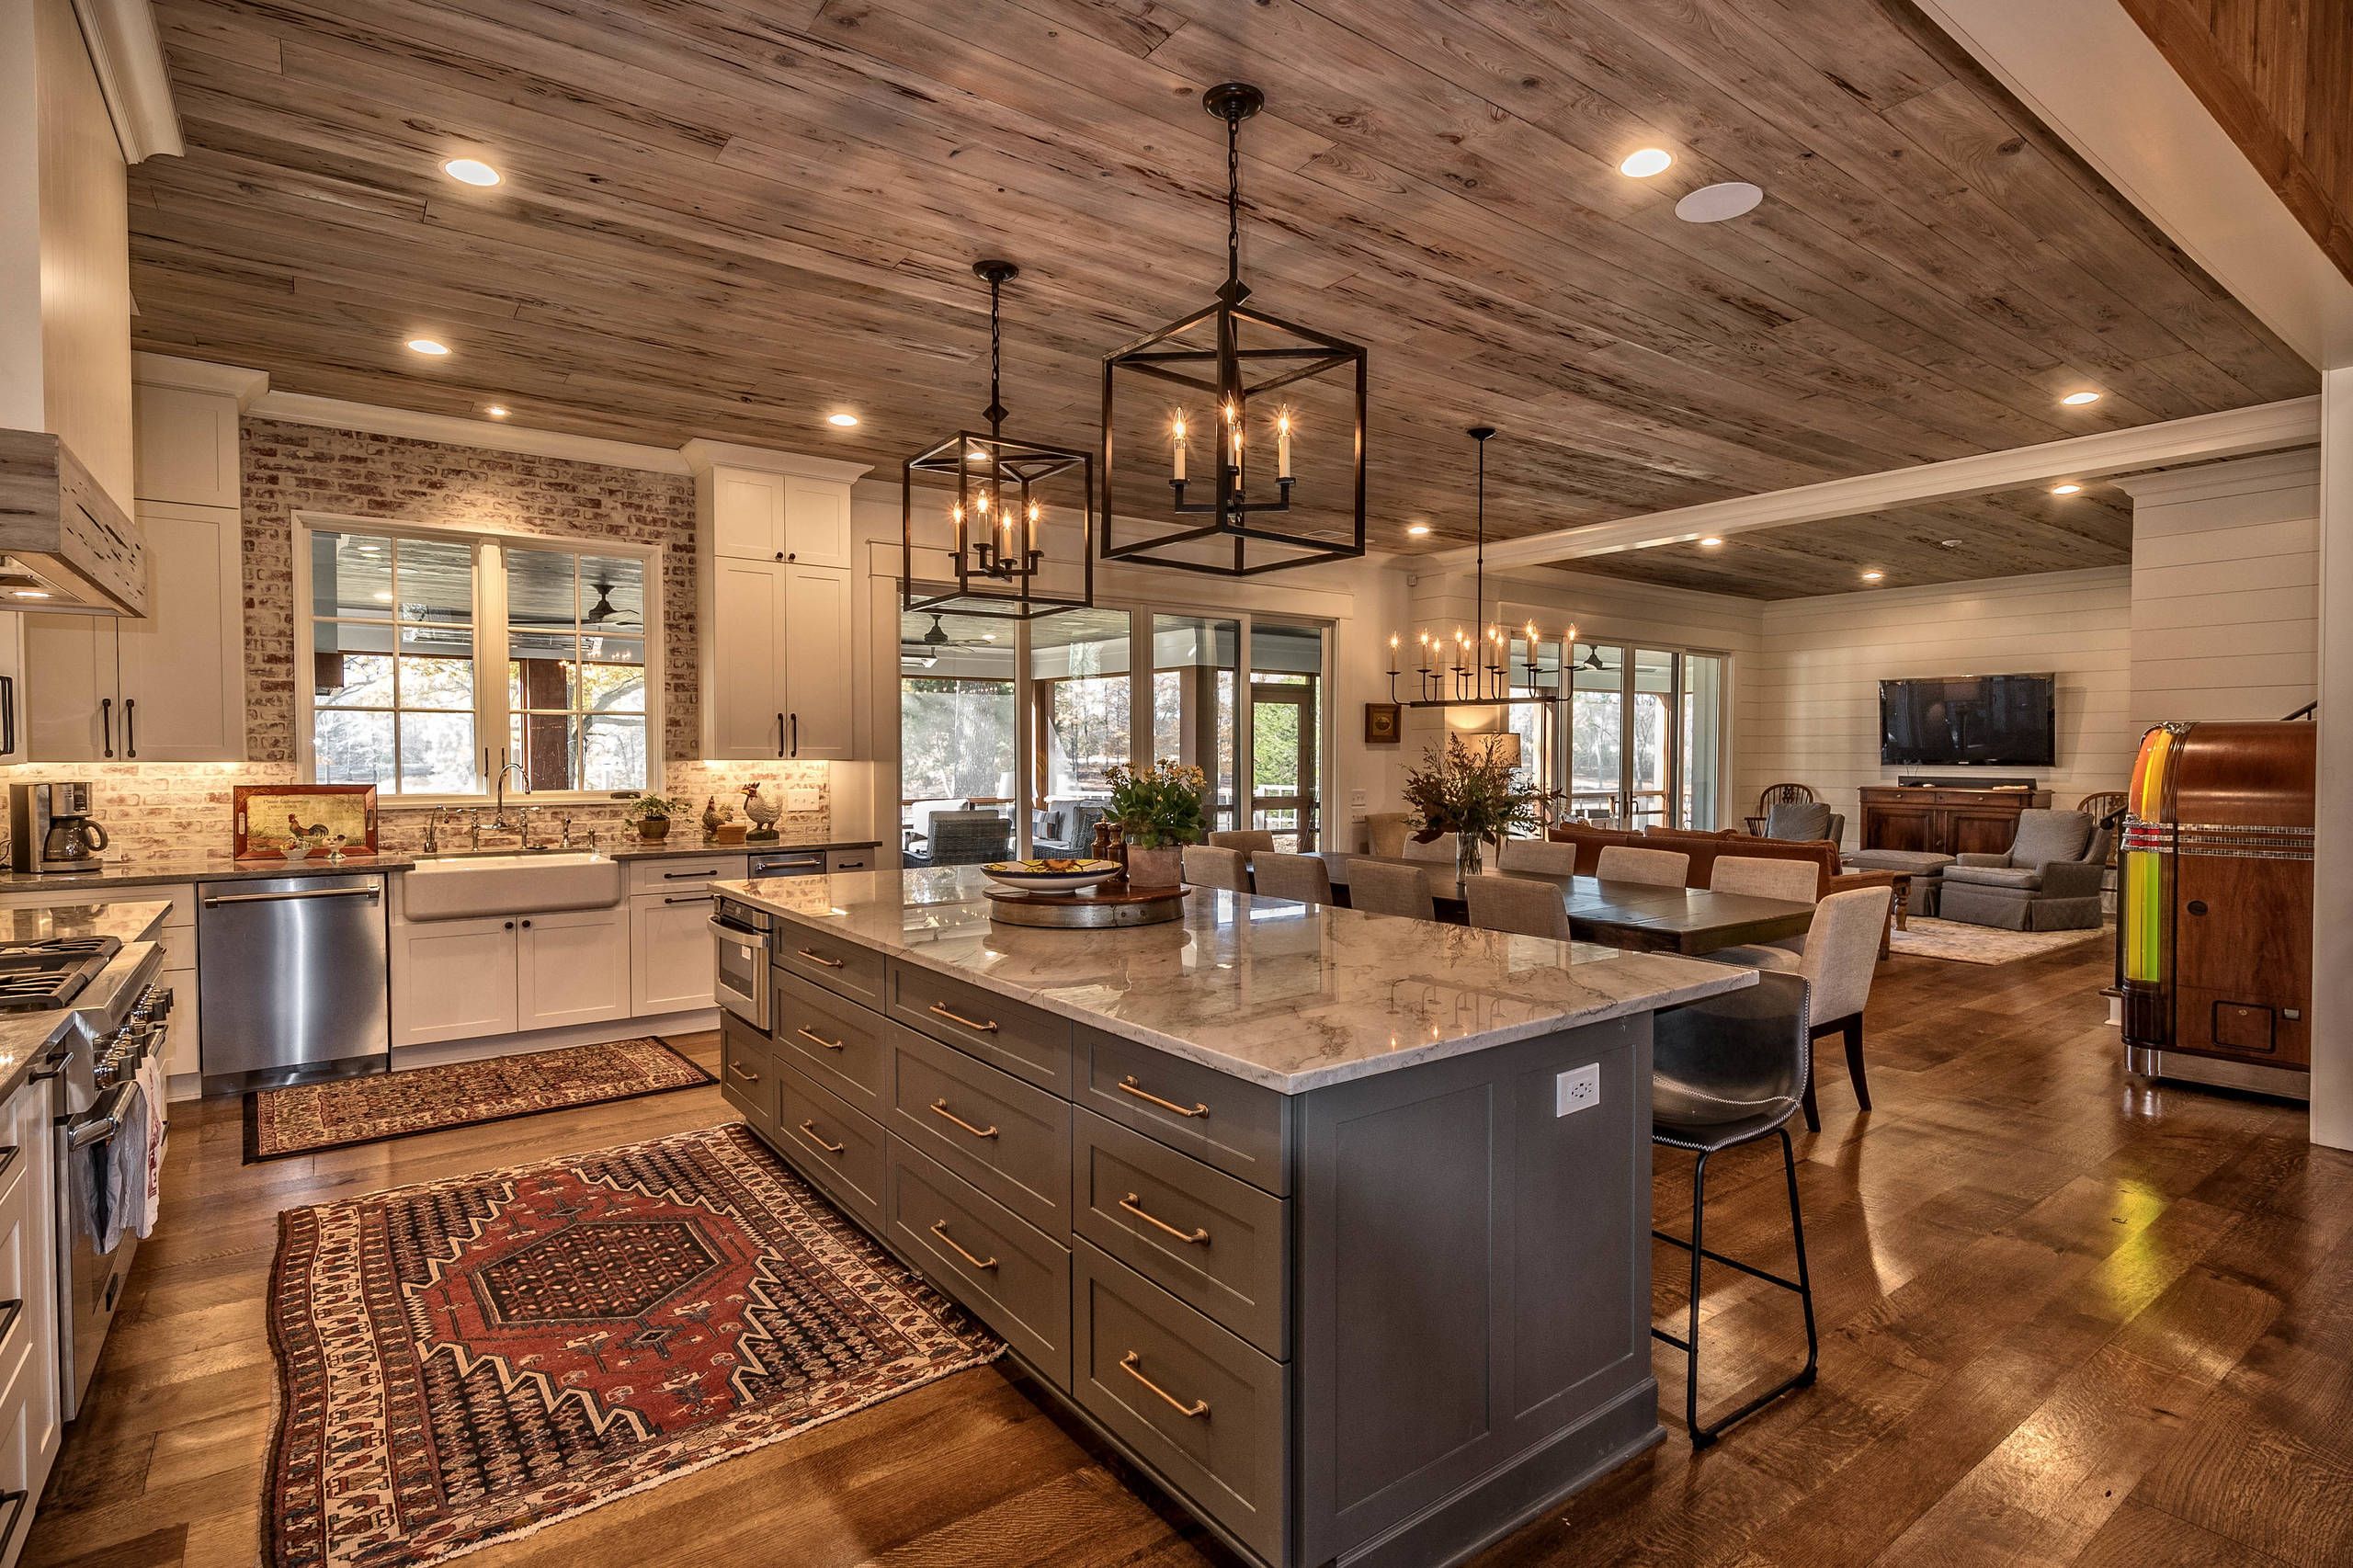 75 Beautiful Rustic Kitchen Pictures Ideas Houzz